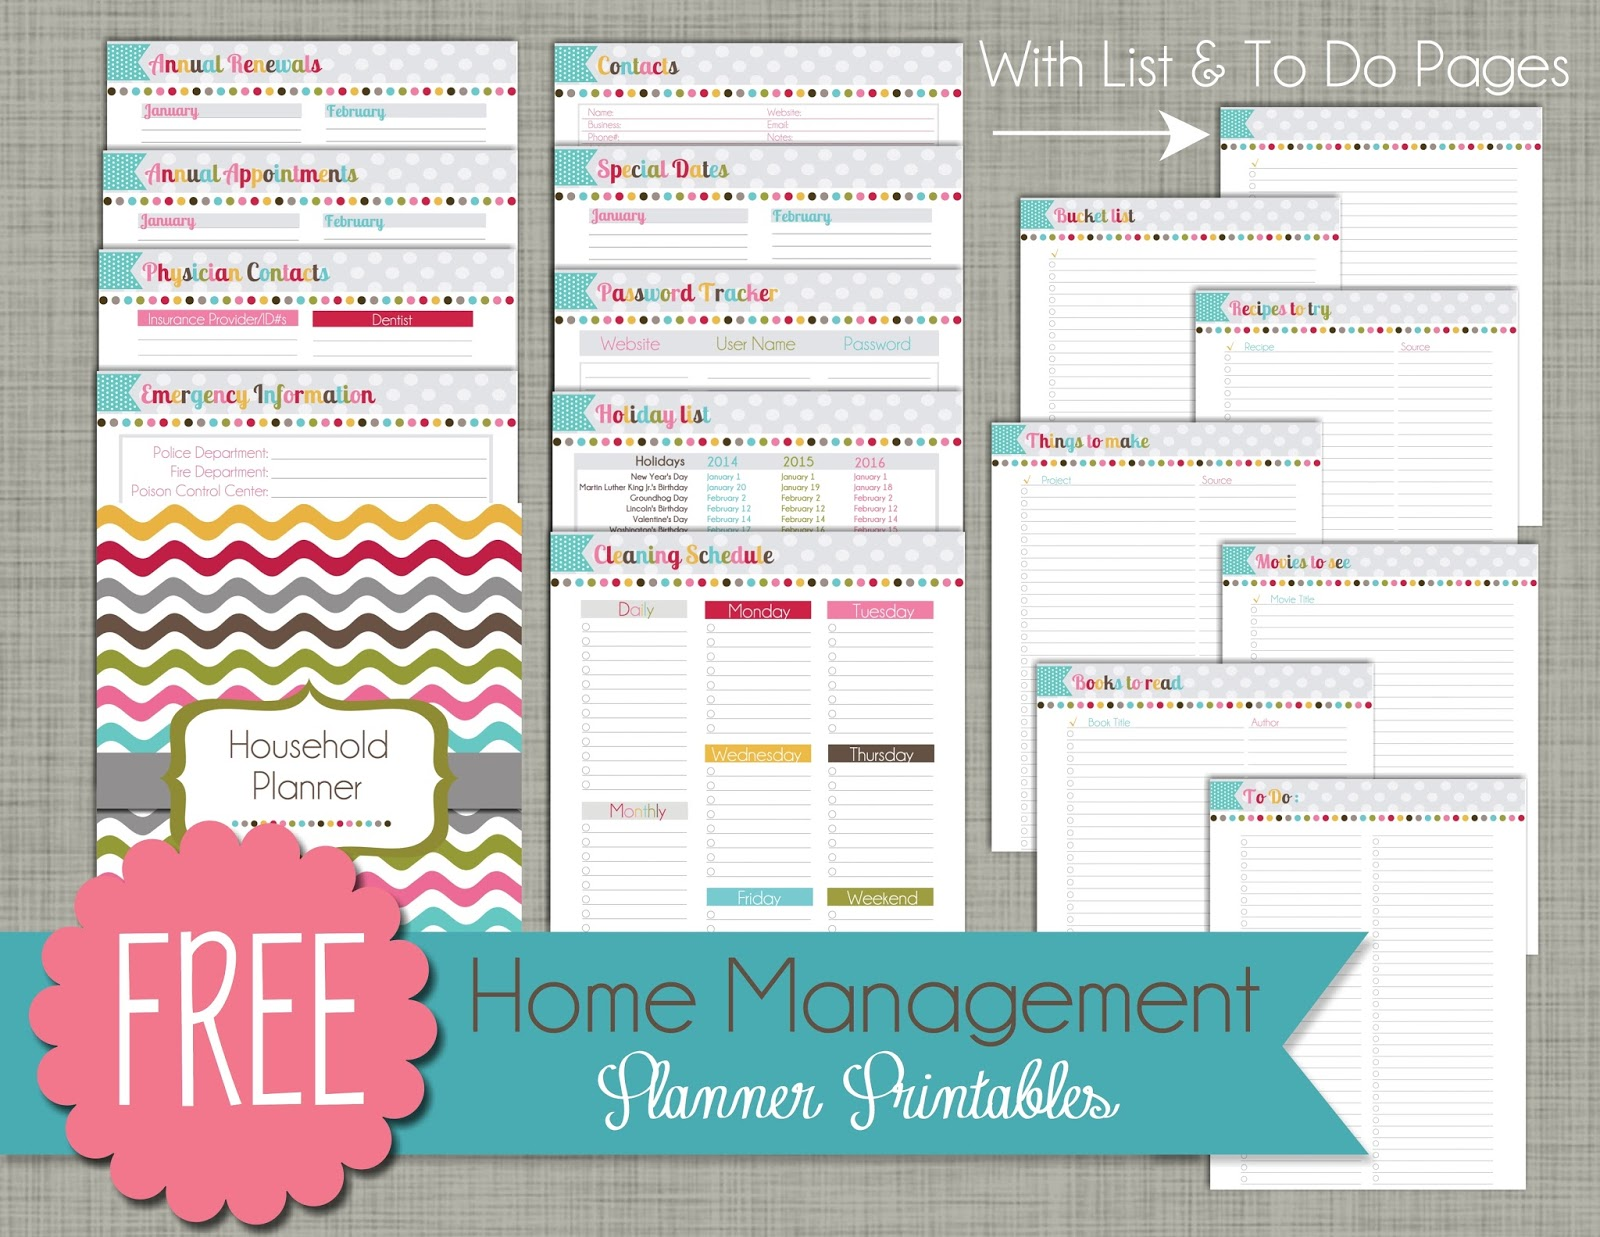 5 Images of Free 8 X 11 Printable Weekly Planners 2016